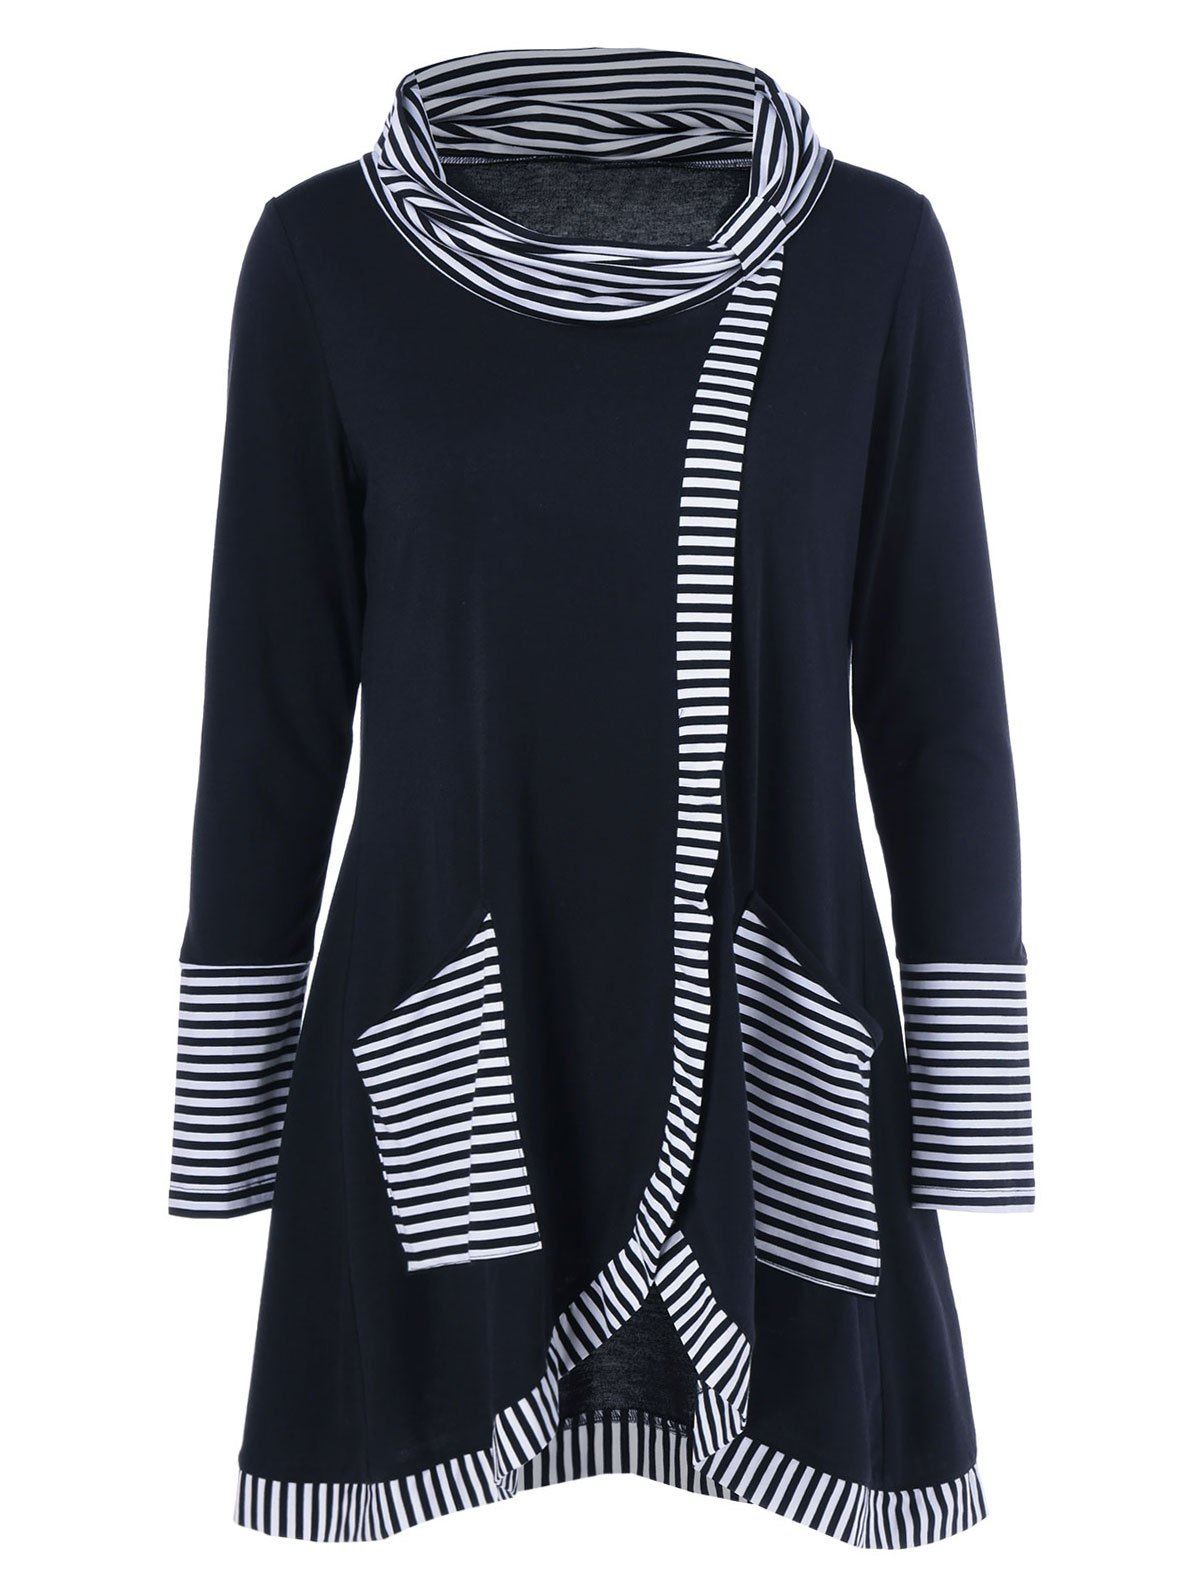 Pinstriped Patchwork Pockets Design TeeWOMEN<br><br>Size: M; Color: BLACK; Material: Polyester; Sleeve Length: Full; Collar: Cowl Neck; Style: Casual; Pattern Type: Striped; Season: Fall,Spring; Weight: 0.380kg; Package Contents: 1 x Tee;